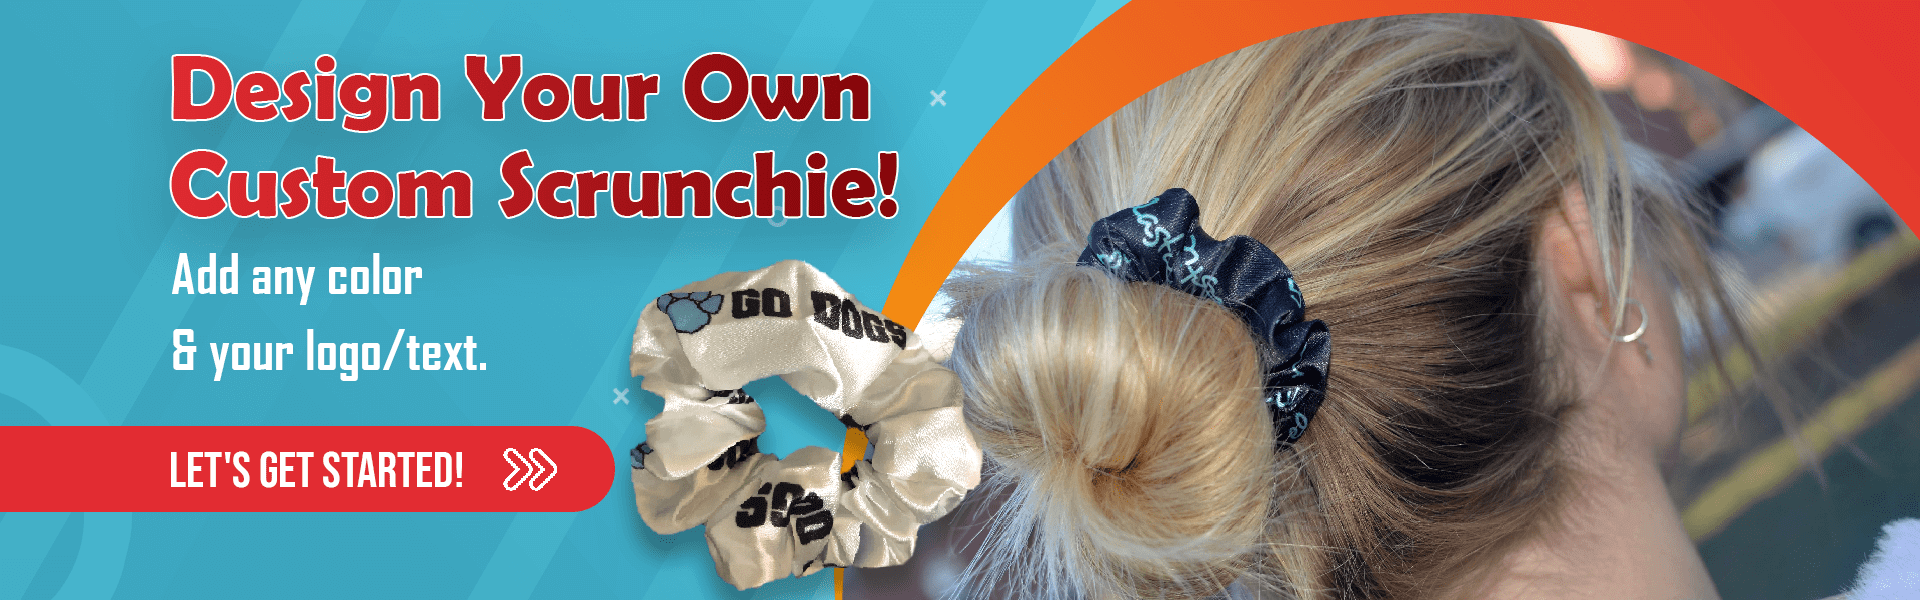 Custom Scrunchies